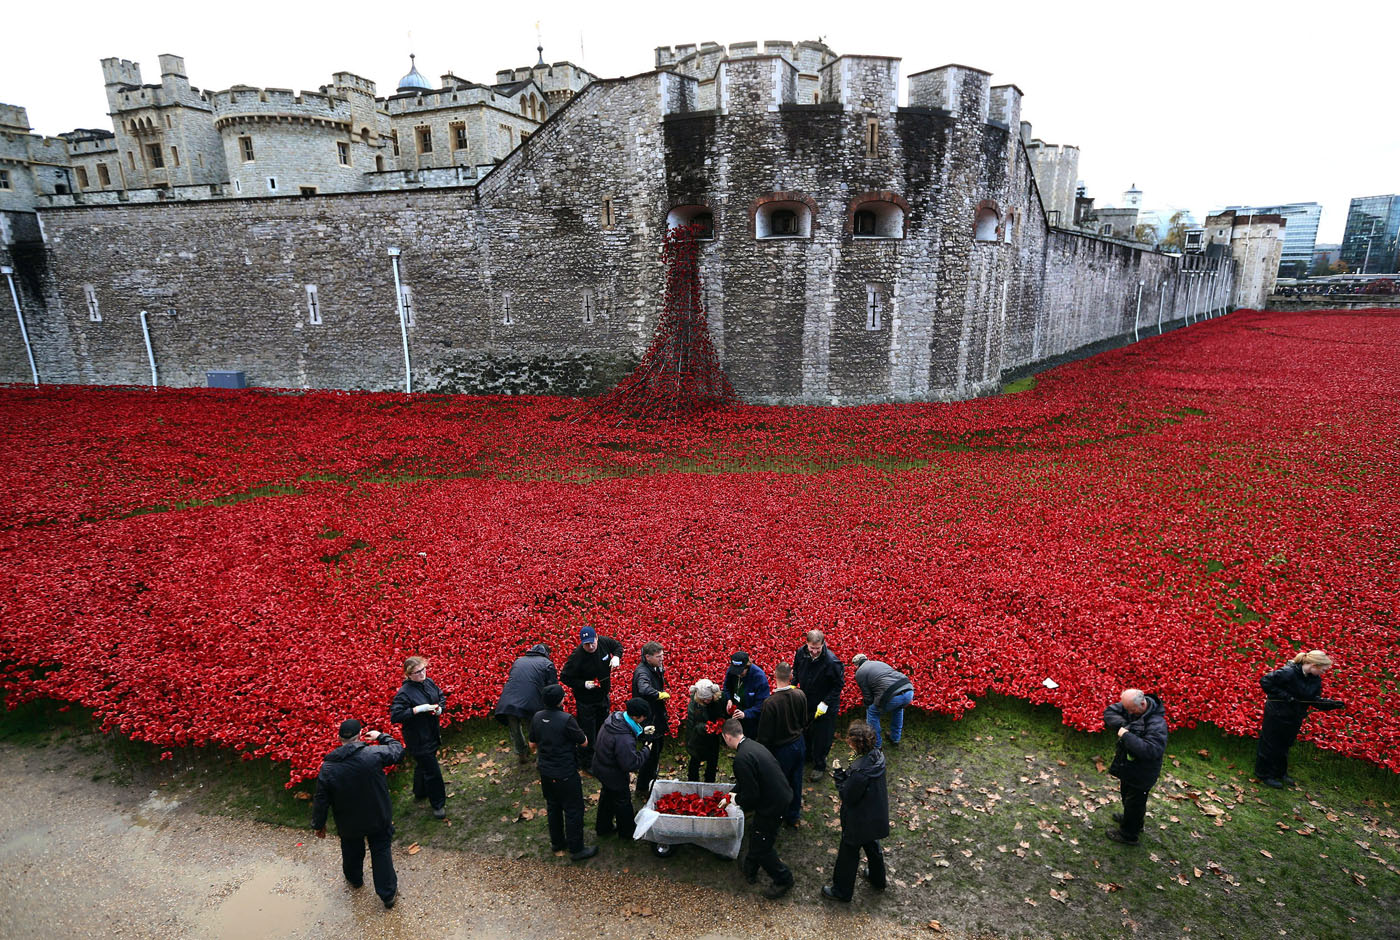 Workers remove 888,245 poppies from the Tower of London by hand